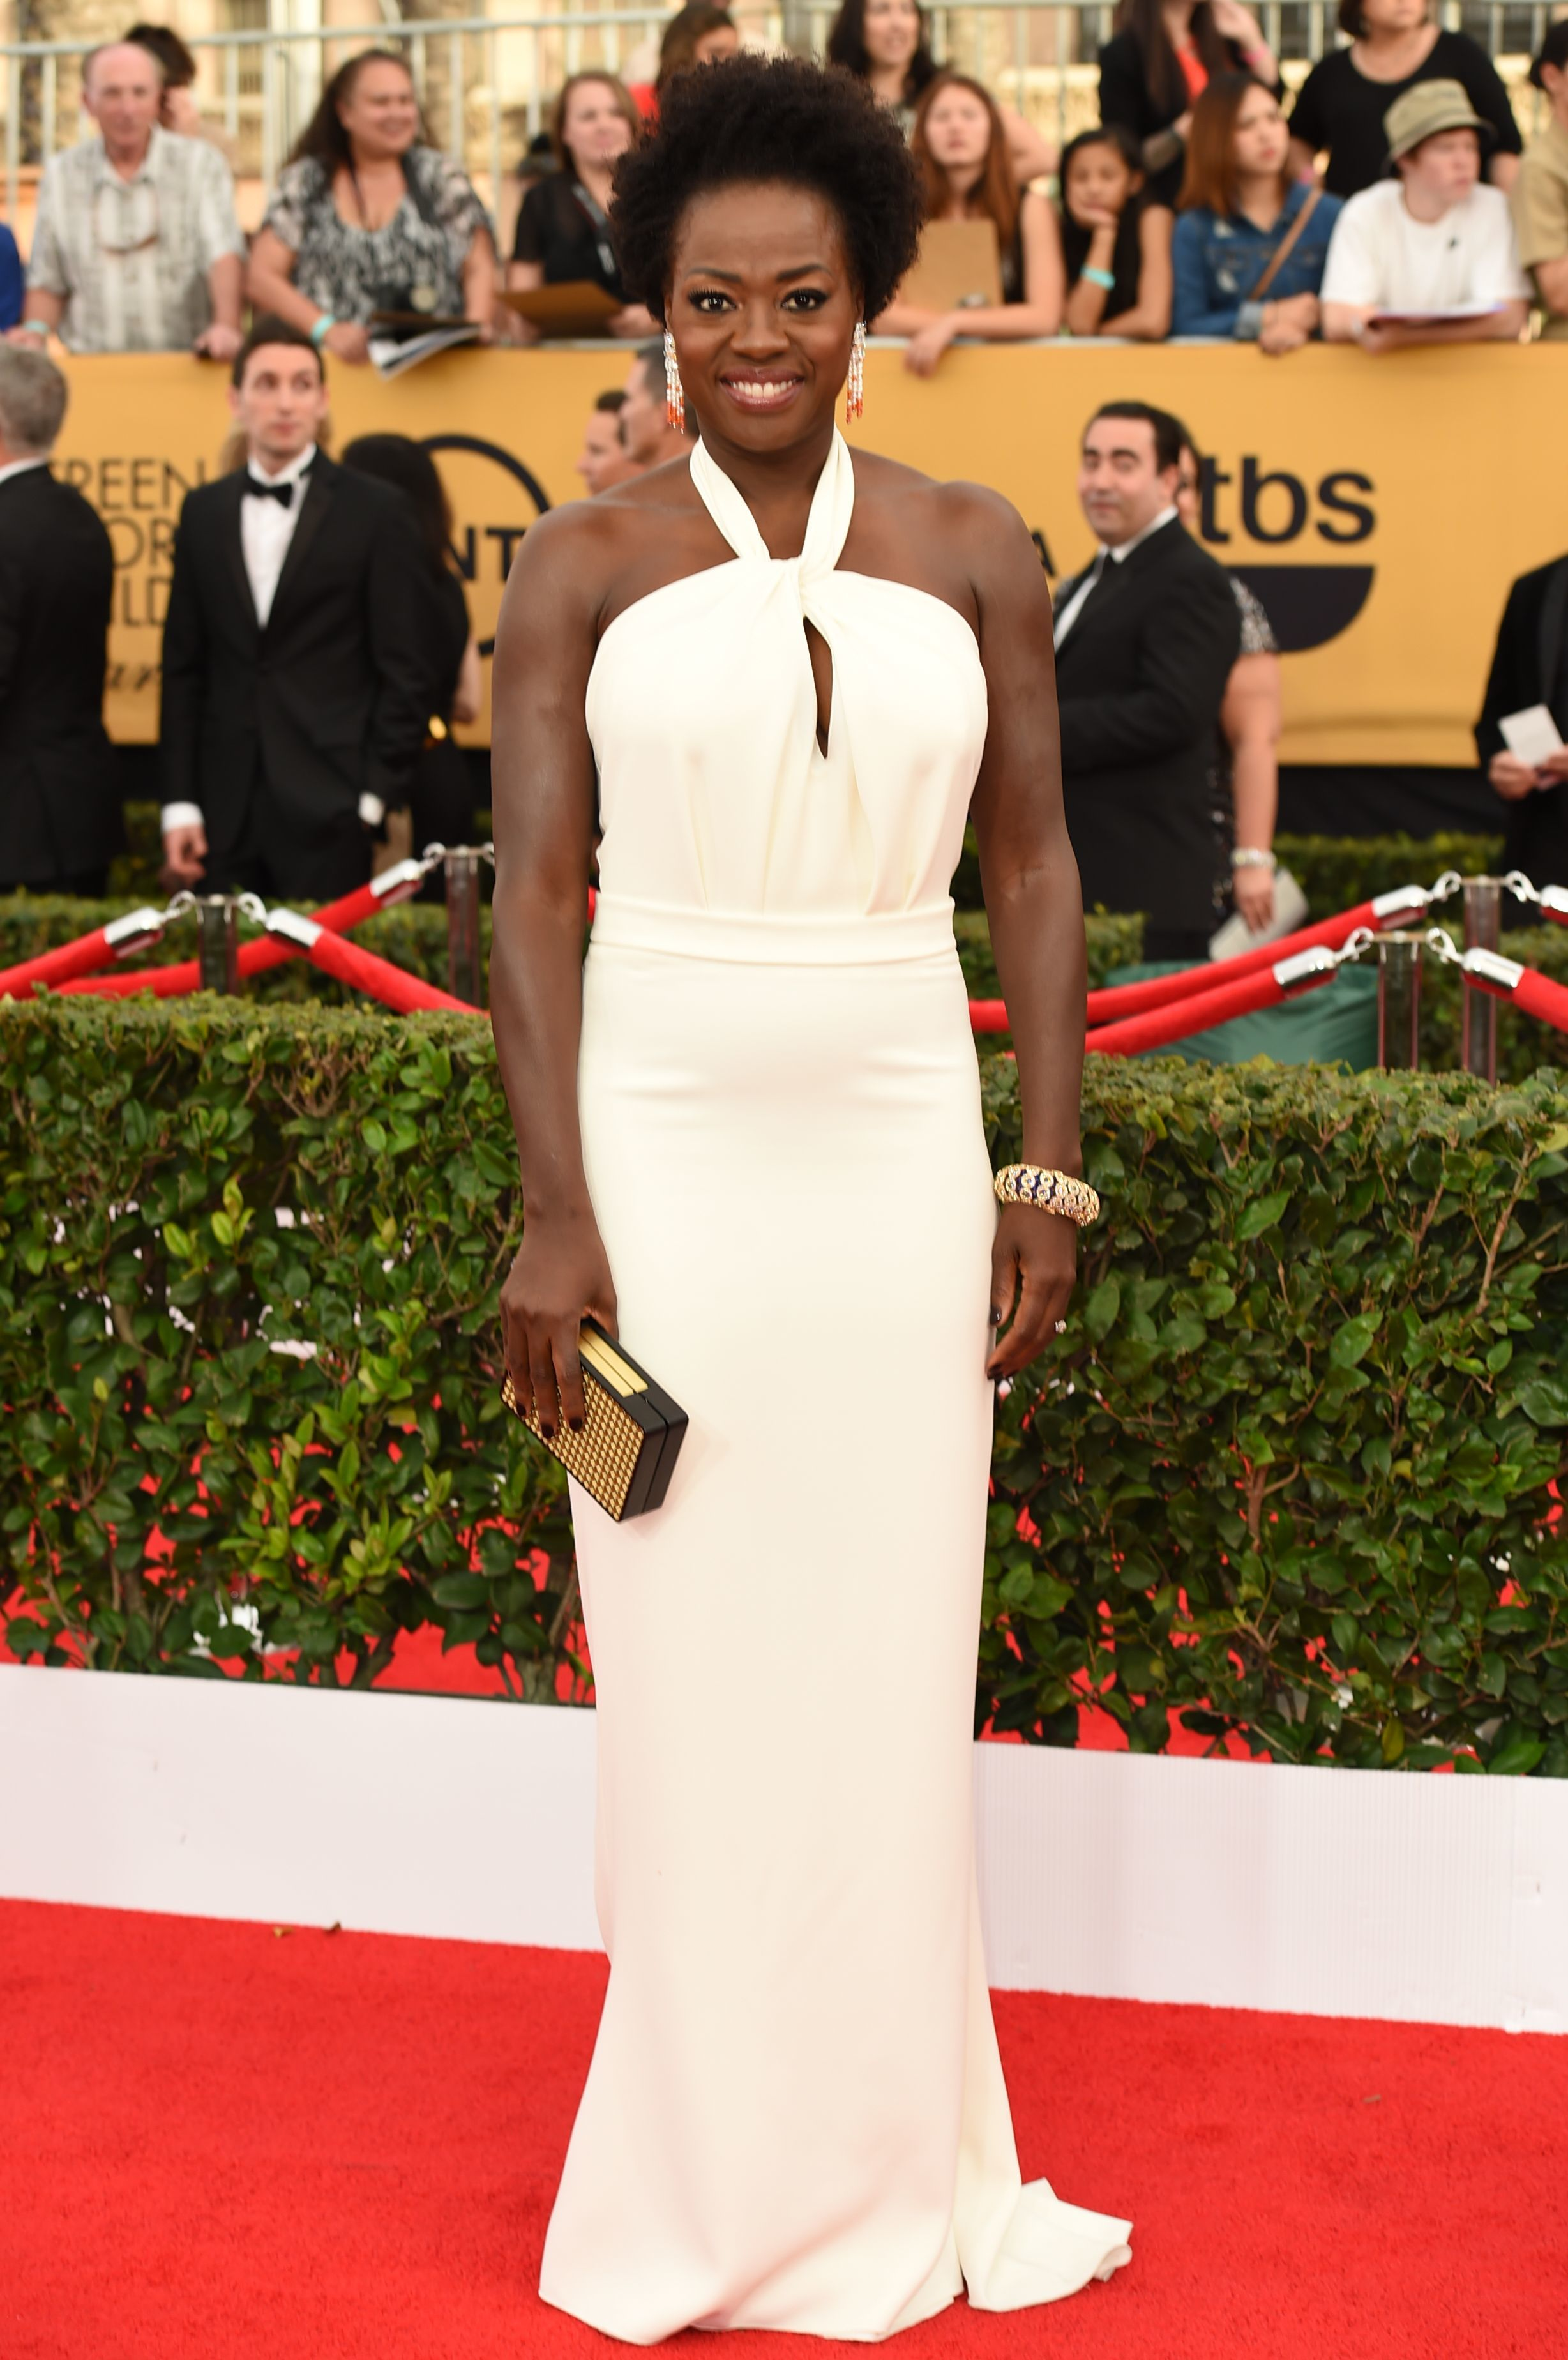 Viola Davis: 'It feels good to embrace exactly who I am'